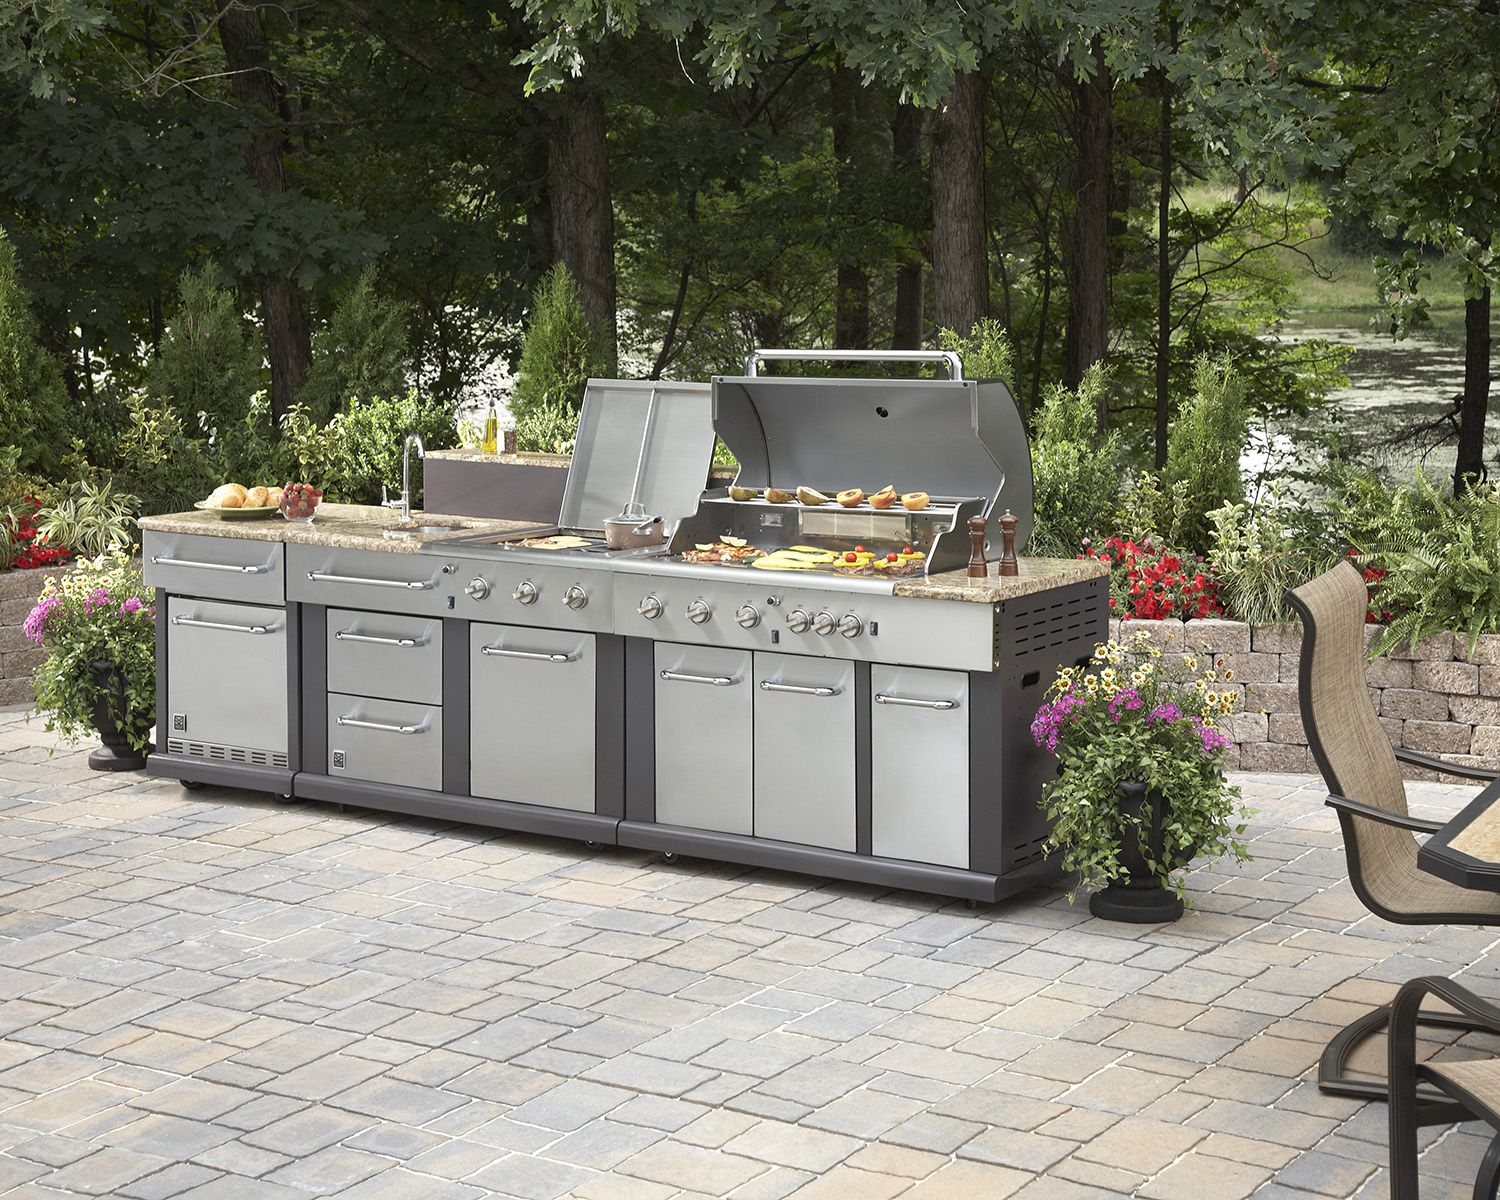 Take outdoor cooking to a whole new level with this stunning